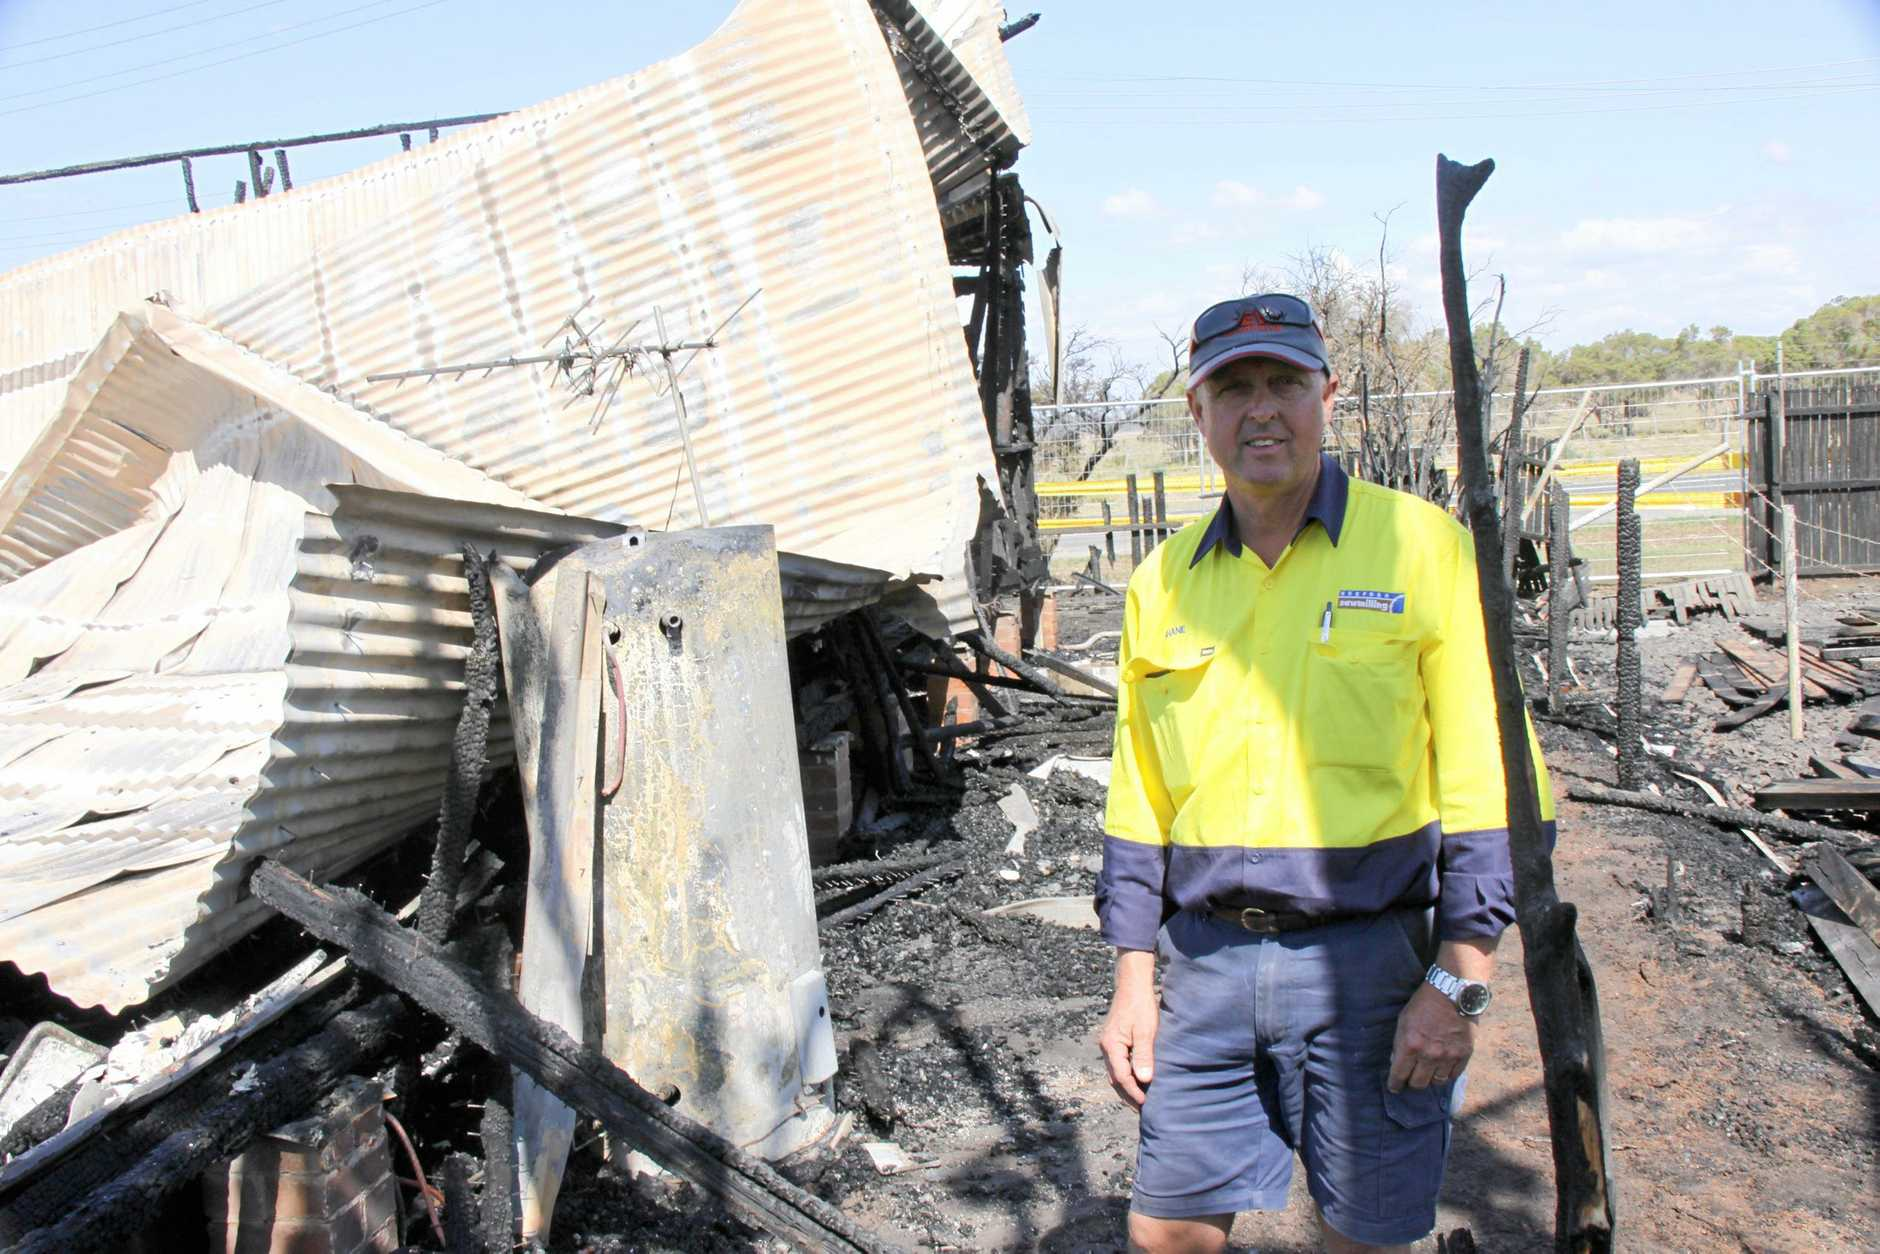 CLOSE SHAVE: The fire which destroyed an old cottage next to the Hurfords timber business in Casino was extinguished by firefighters on Monday evening.  Site manager Shane Johns inspects the damage on Tuesday. He said,